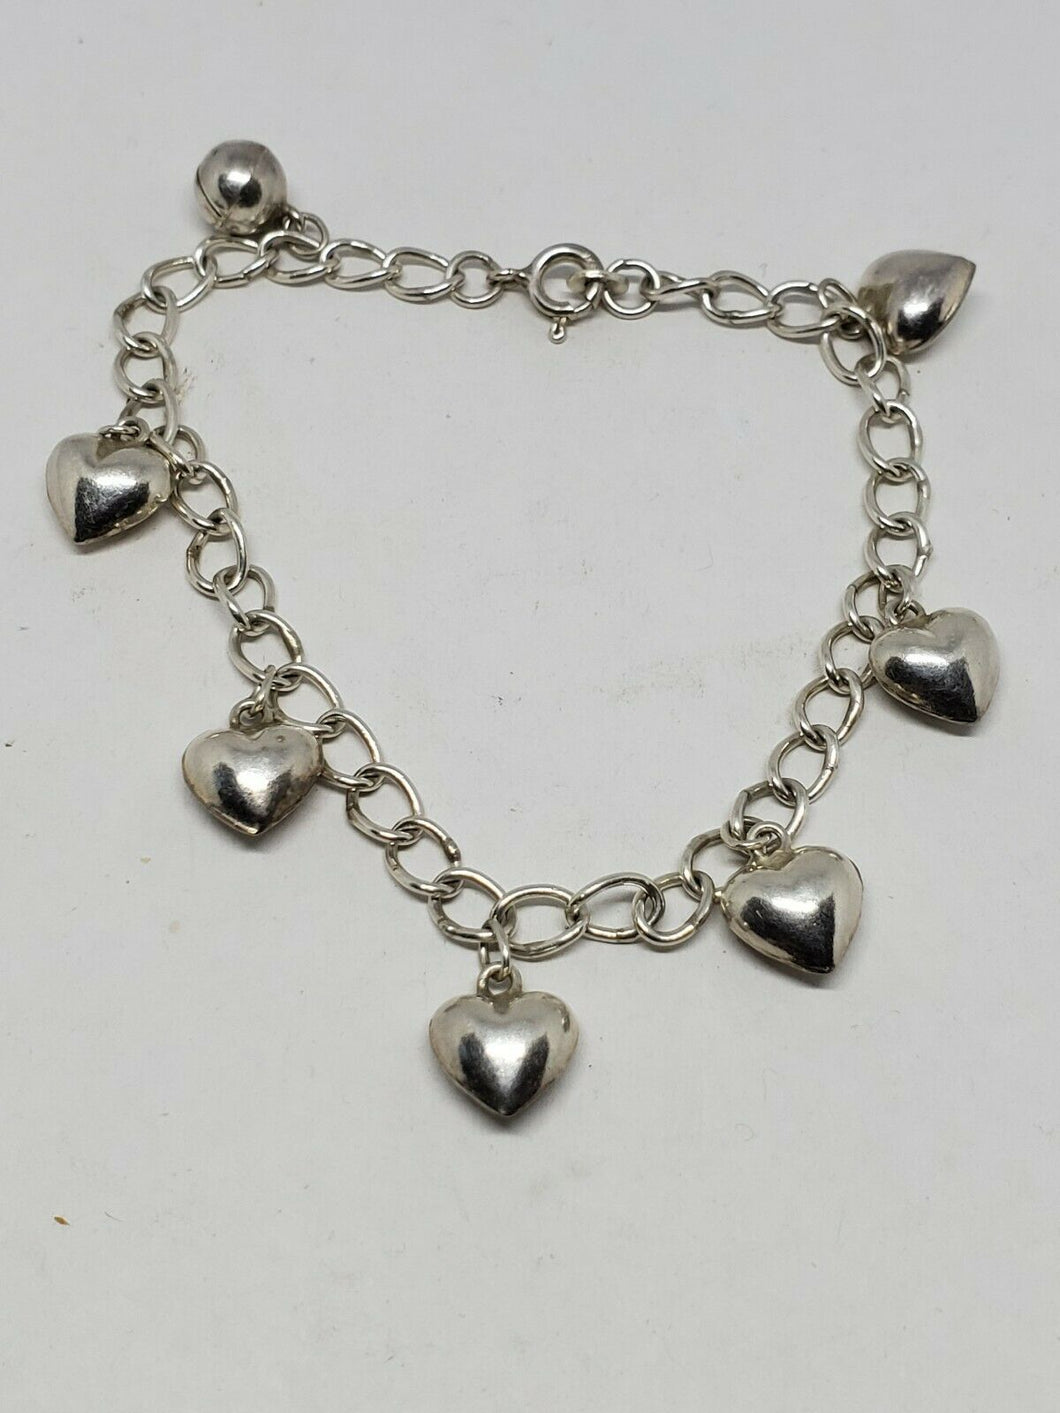 Sterling Silver 7 Charm Puffy Heart Charm Chain Bracelet 7.25